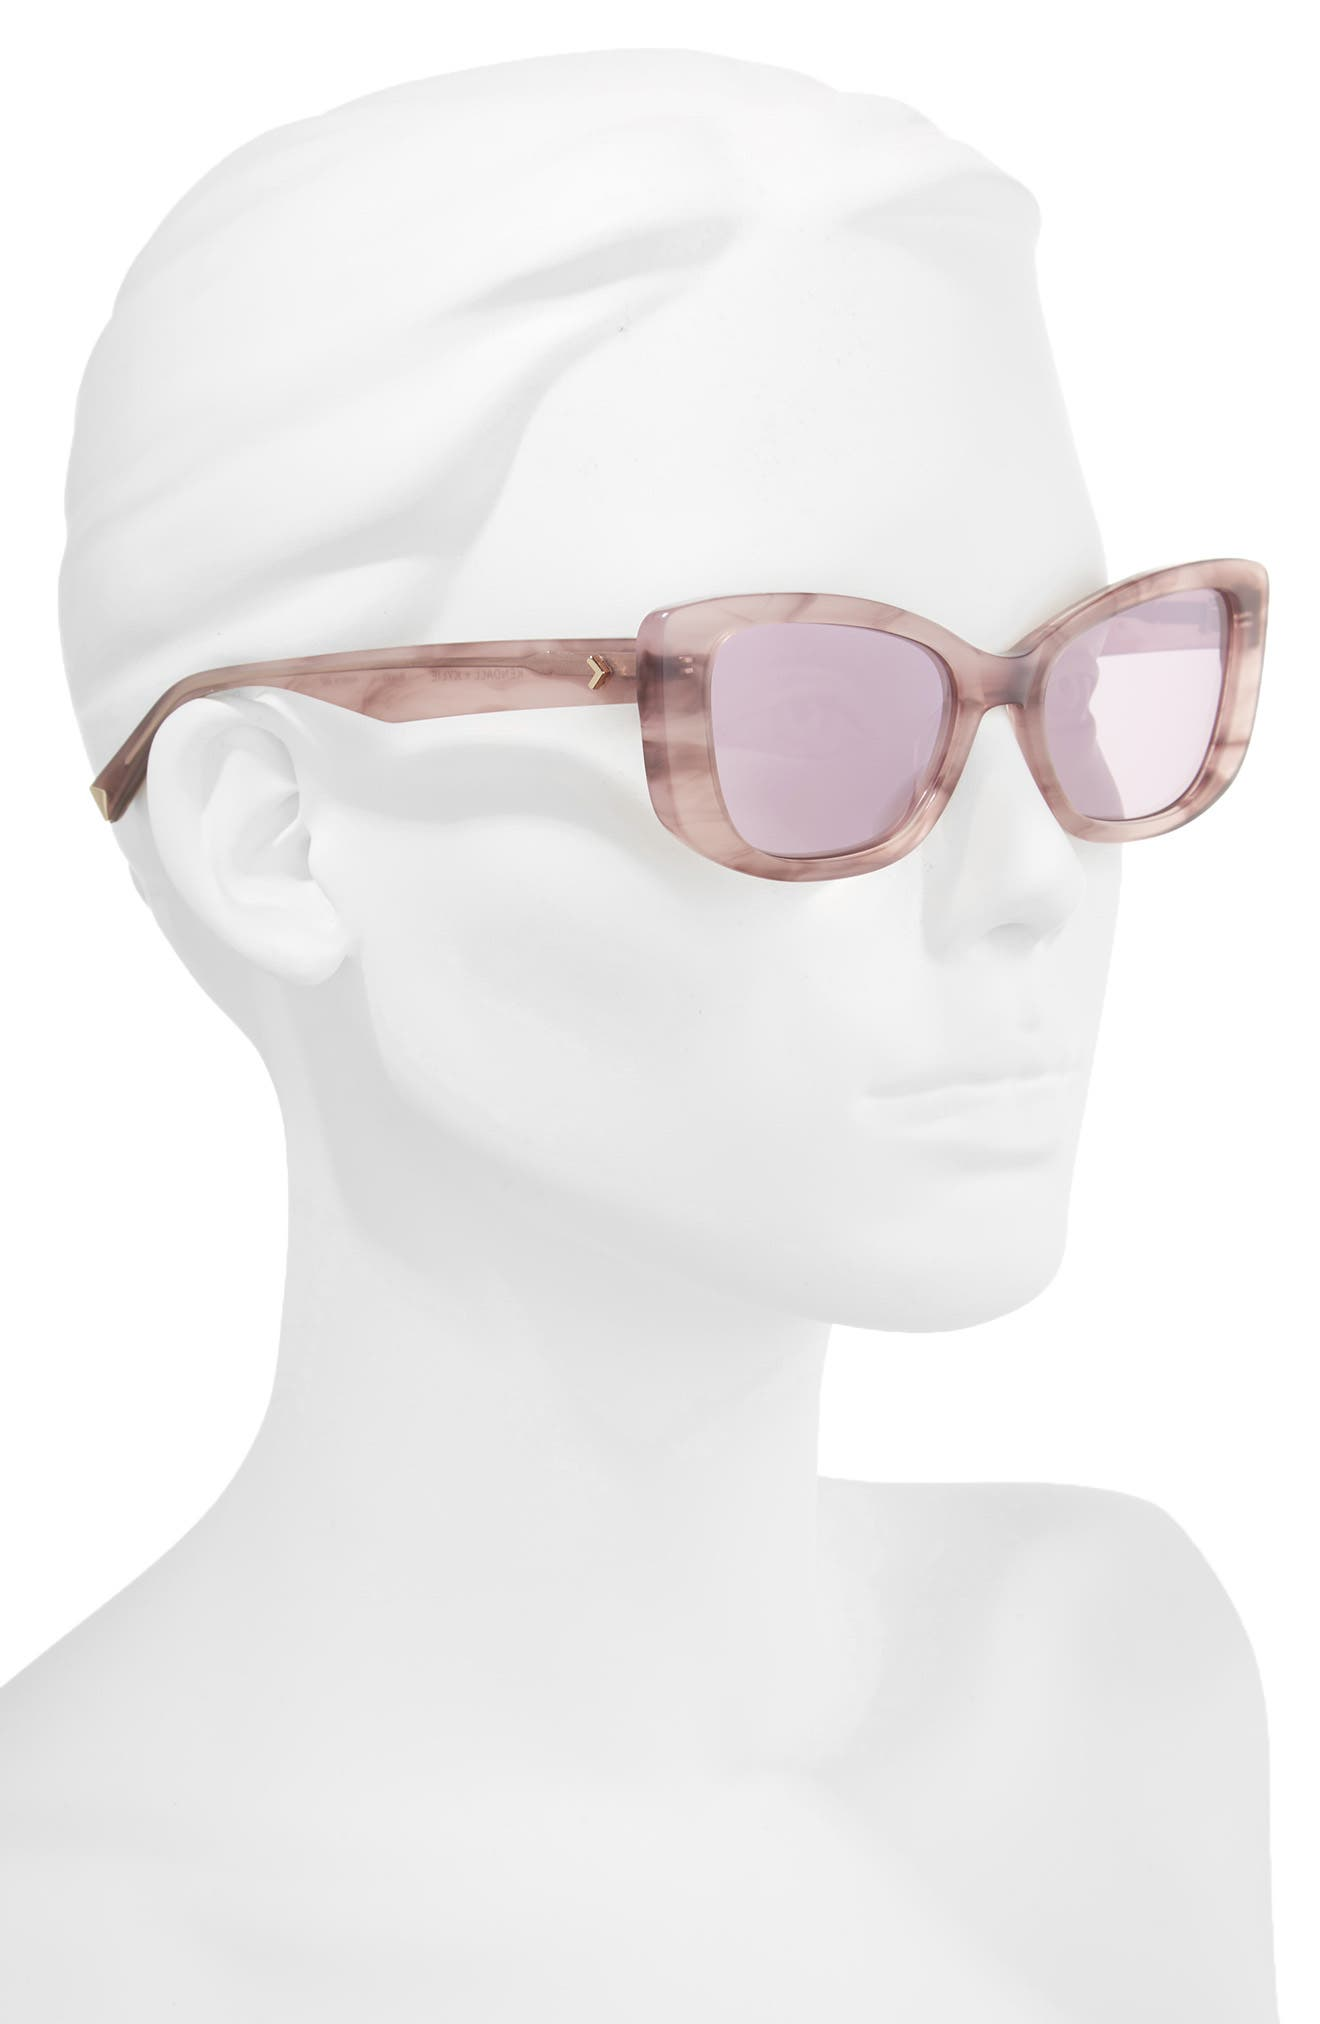 53mm Cat Eye Sunglasses,                             Alternate thumbnail 2, color,                             Rose Horn